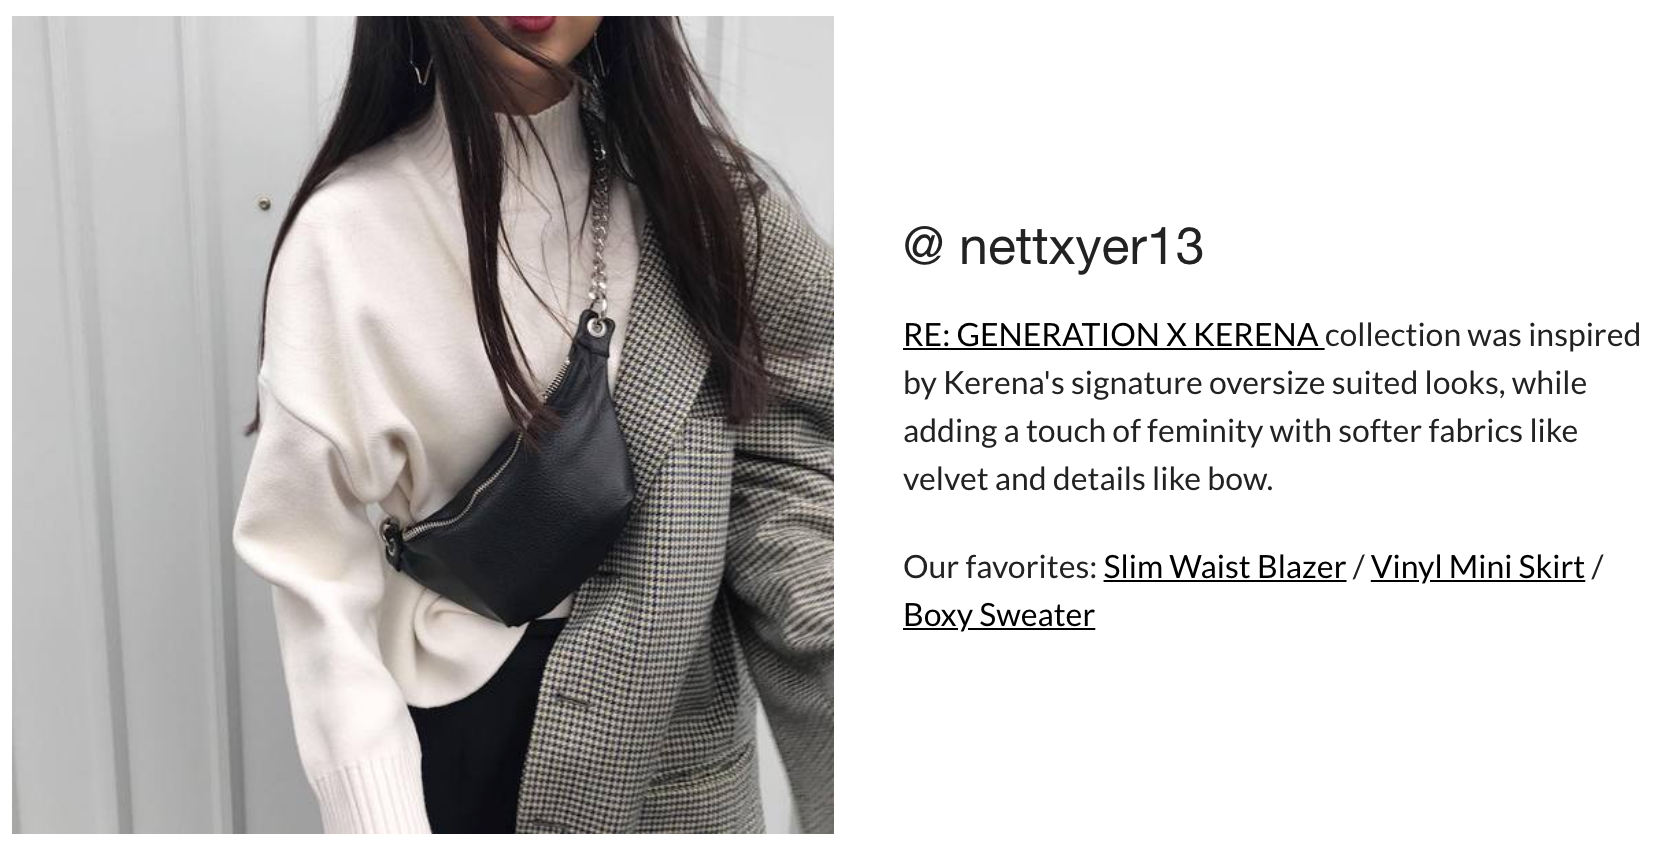 RE: GENERATION X KERENA